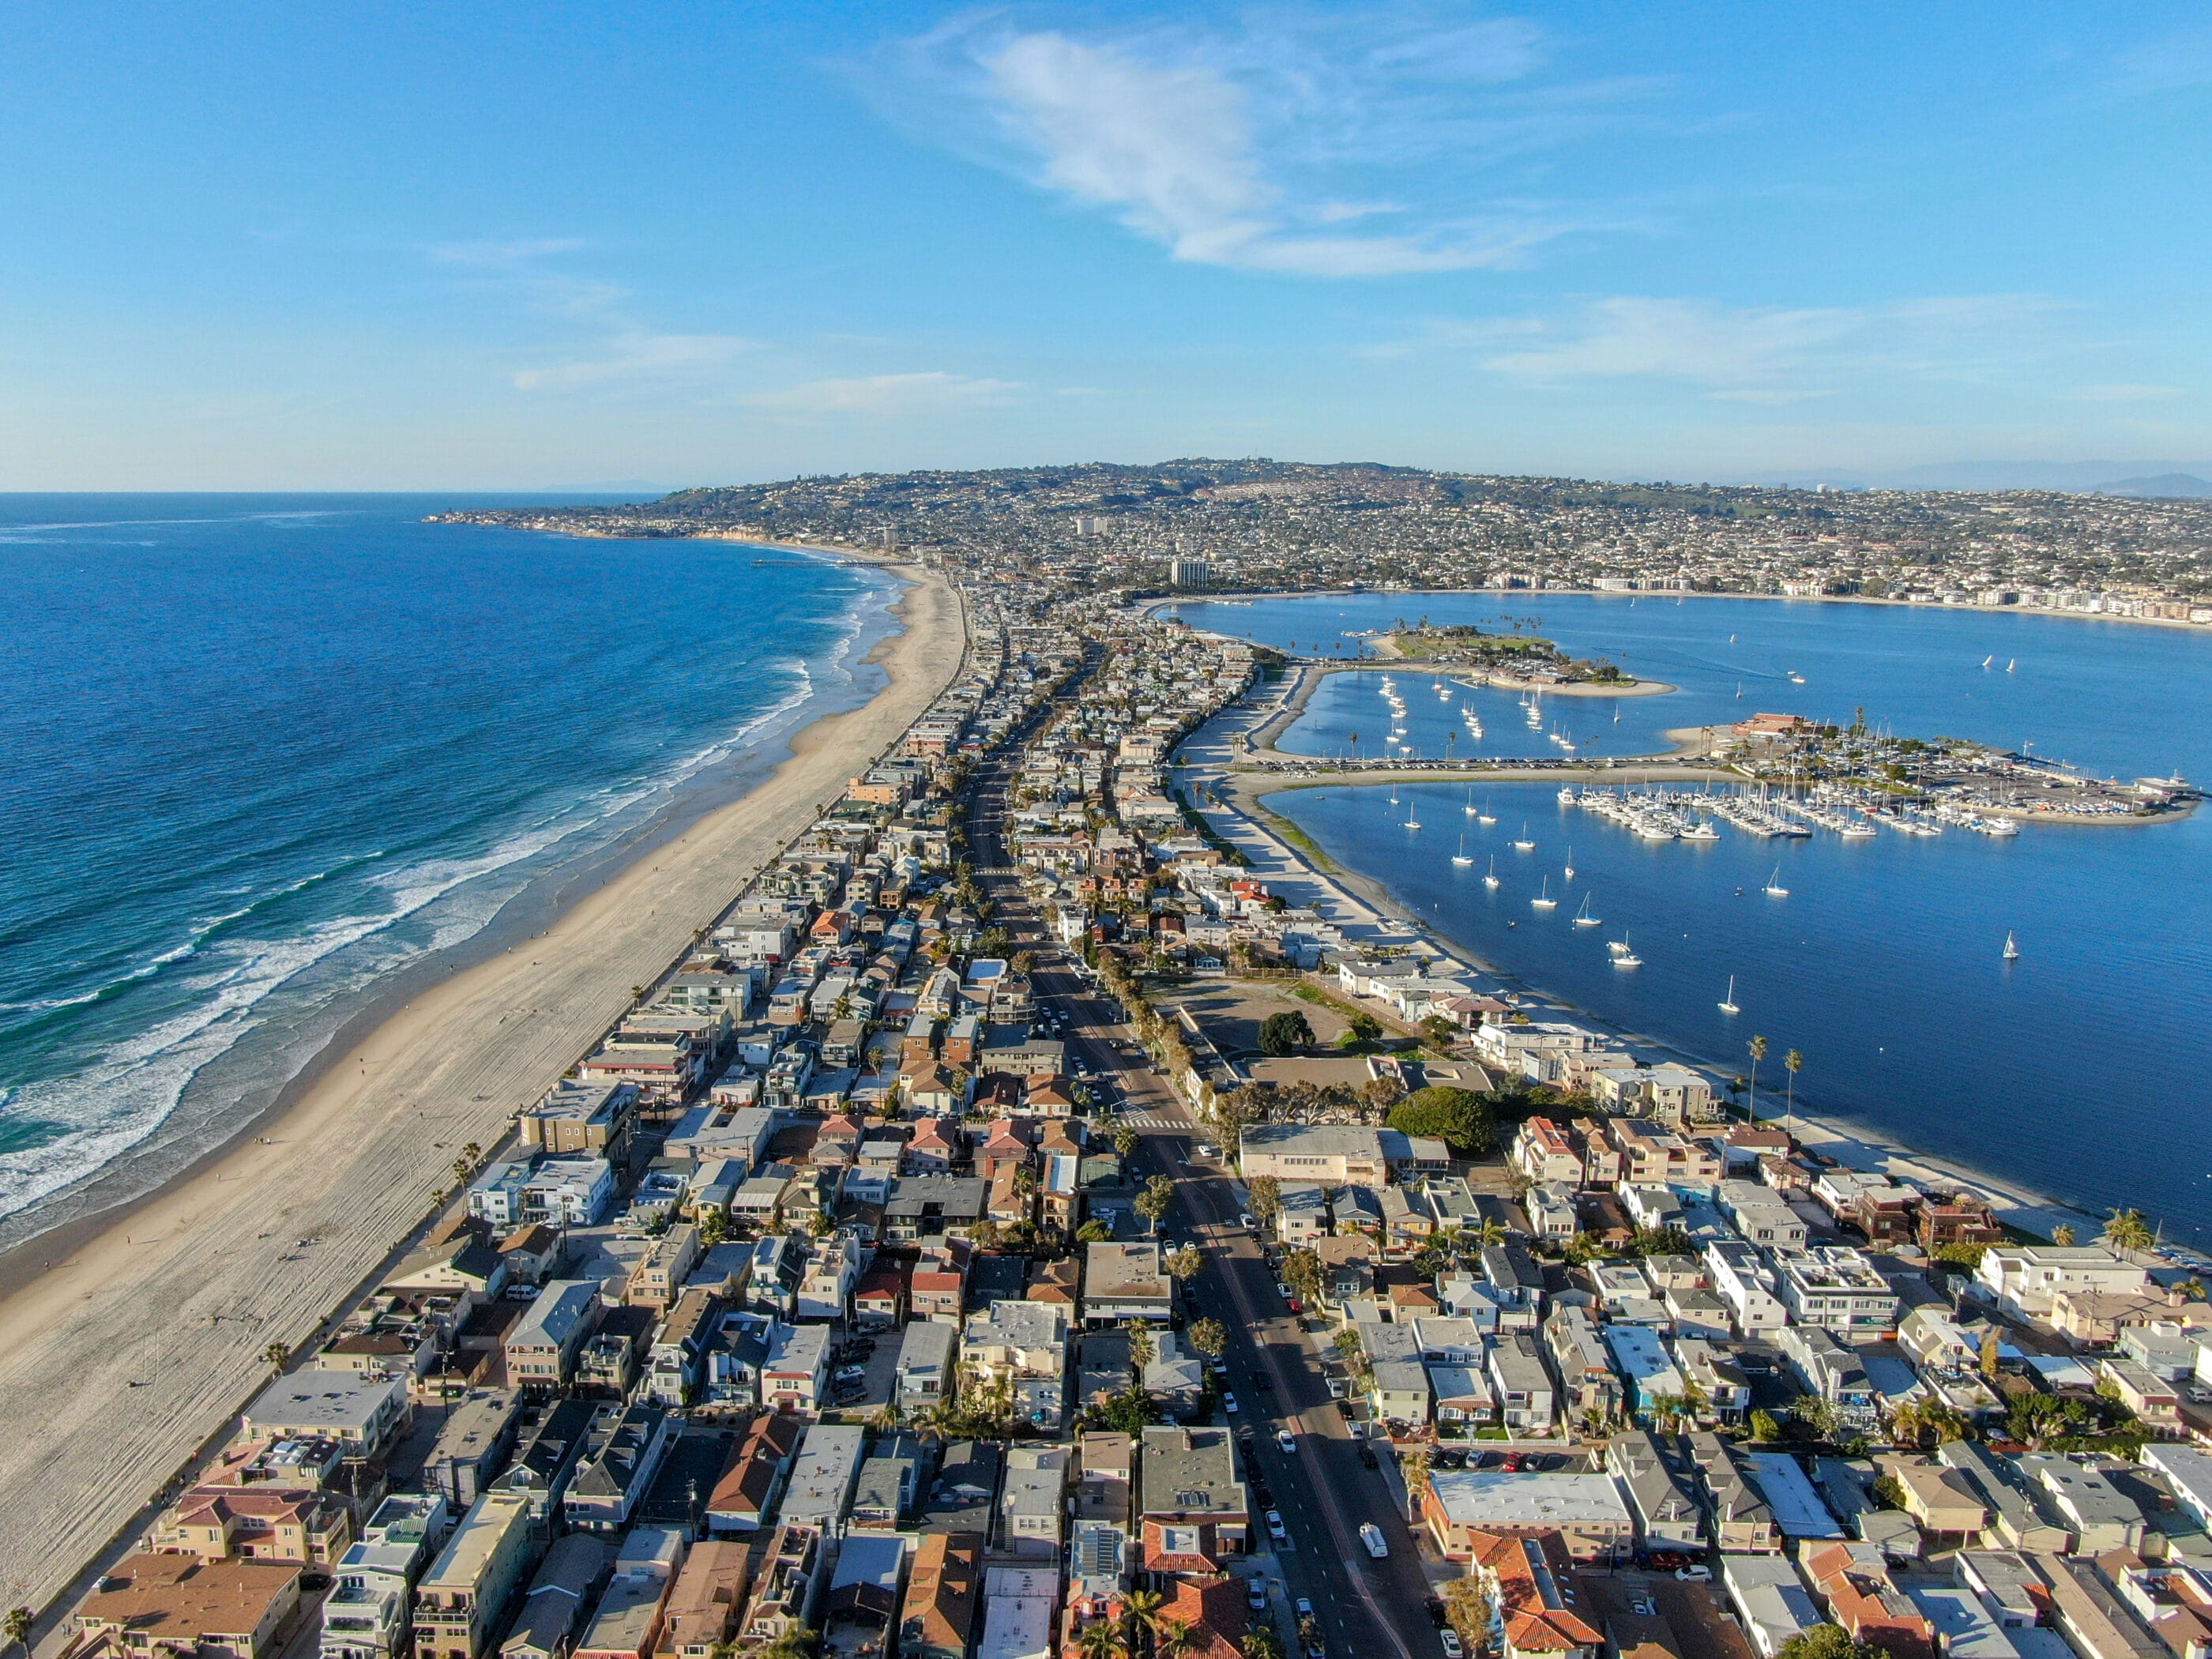 Aerial view of vacation rental homes along Mission Beach and Mission Bay.